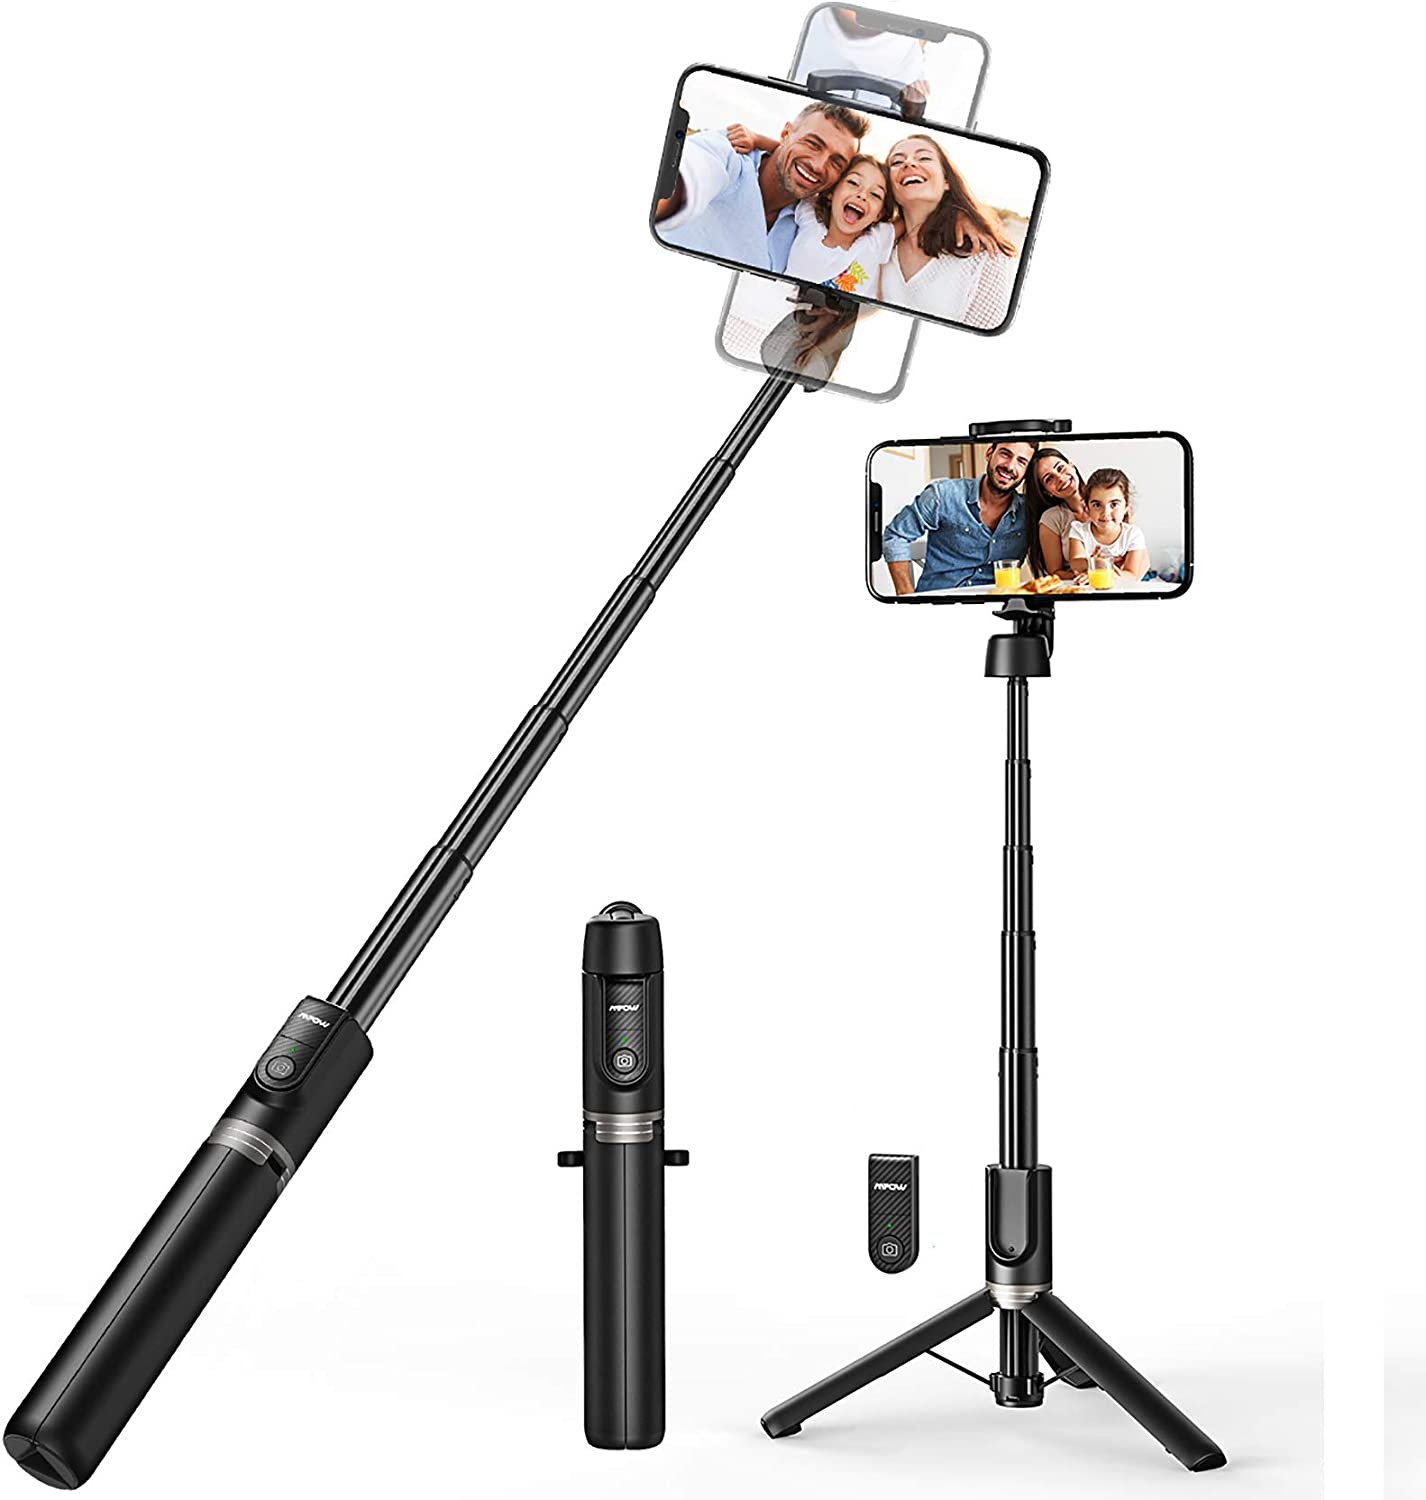 Selfie Stick, Mpow Selfie Stick Tripod with Bluetooth Remote, 360° Rotation Extendable Phone Tripod Stand Selfie Stick Compatible with iPhone11, X, iPhone 8, 8 Plus, 7, 7 Plus, Galaxy S9 S8 and More